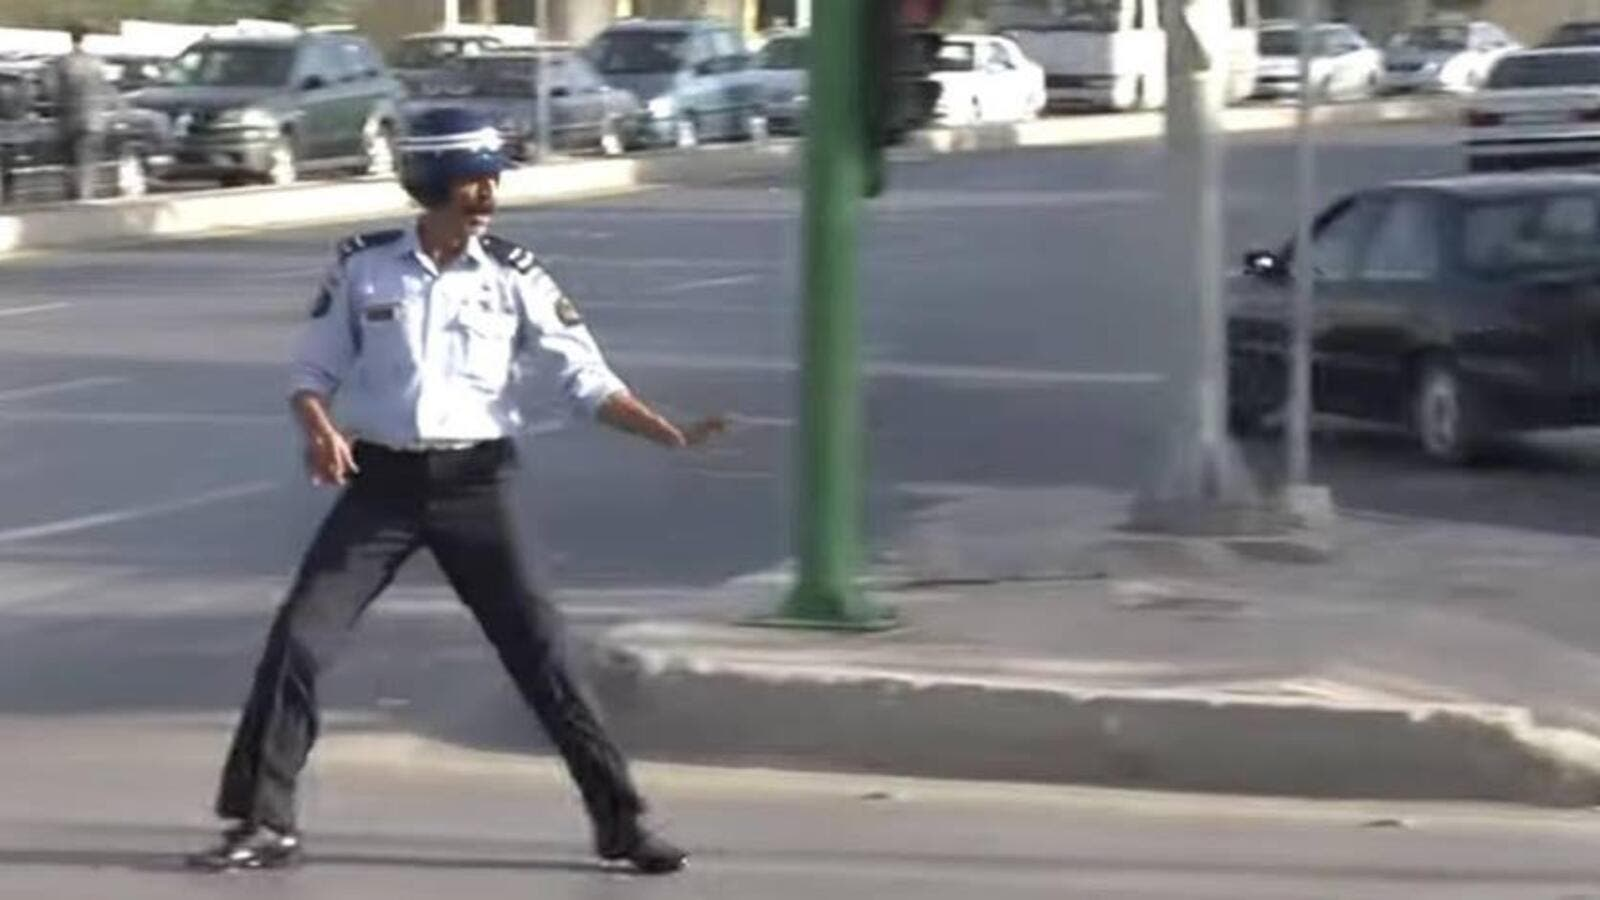 Thneibat, the most famous traffic officer in Jordan, rather enjoyed busting a move on the job - as did everyone else, particularly those stuck in traffic. (Courtesy photo)